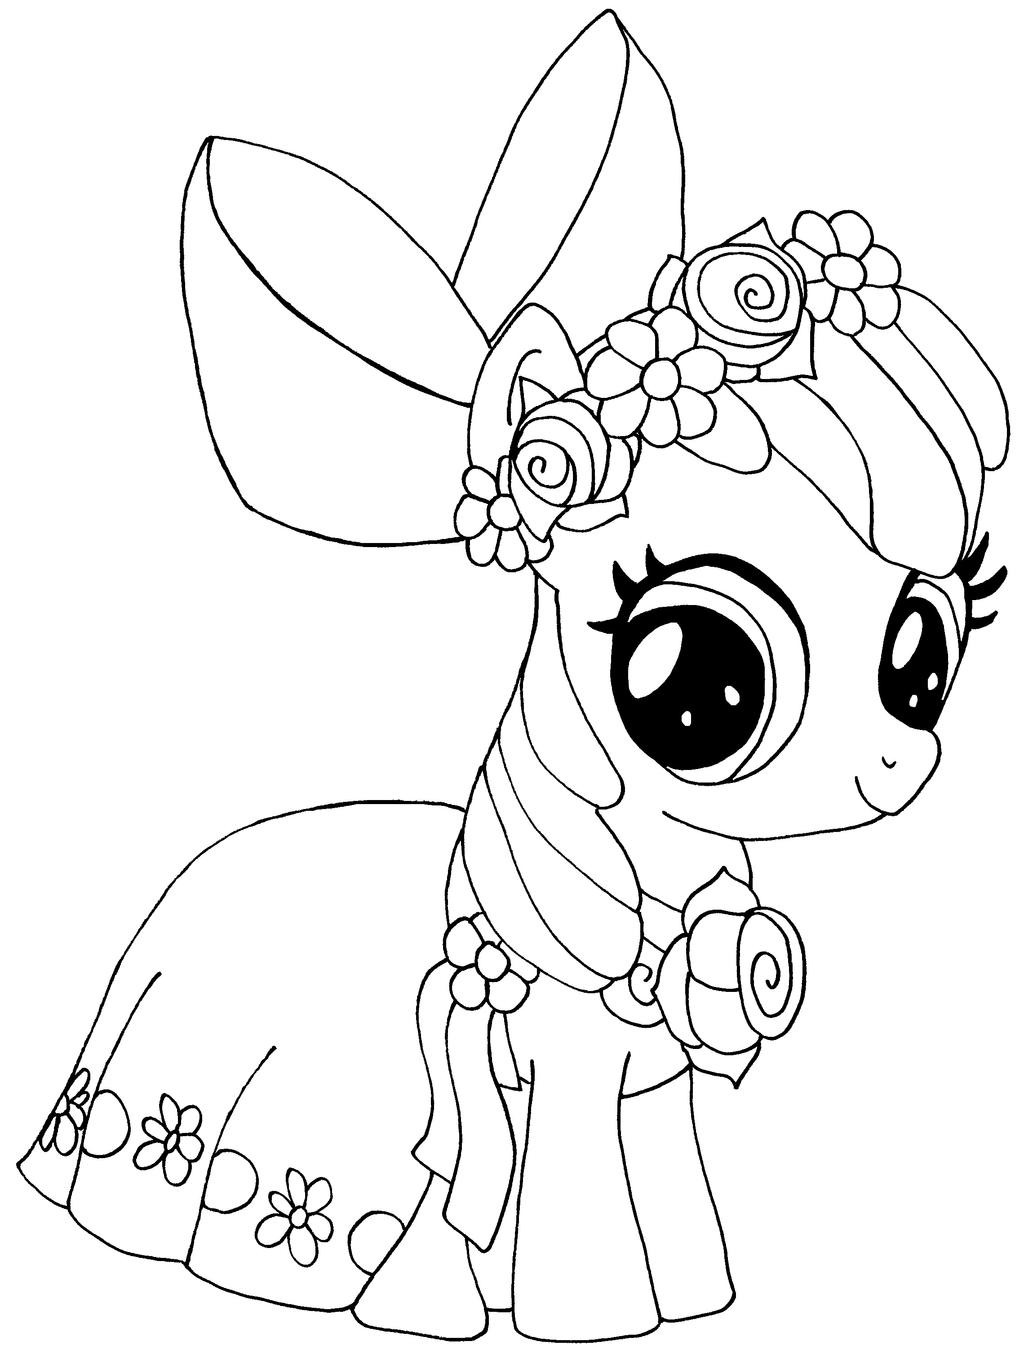 My little pony coloring pages silver spoon - Elfkena 3 1 Apple Bloom By Elfkena